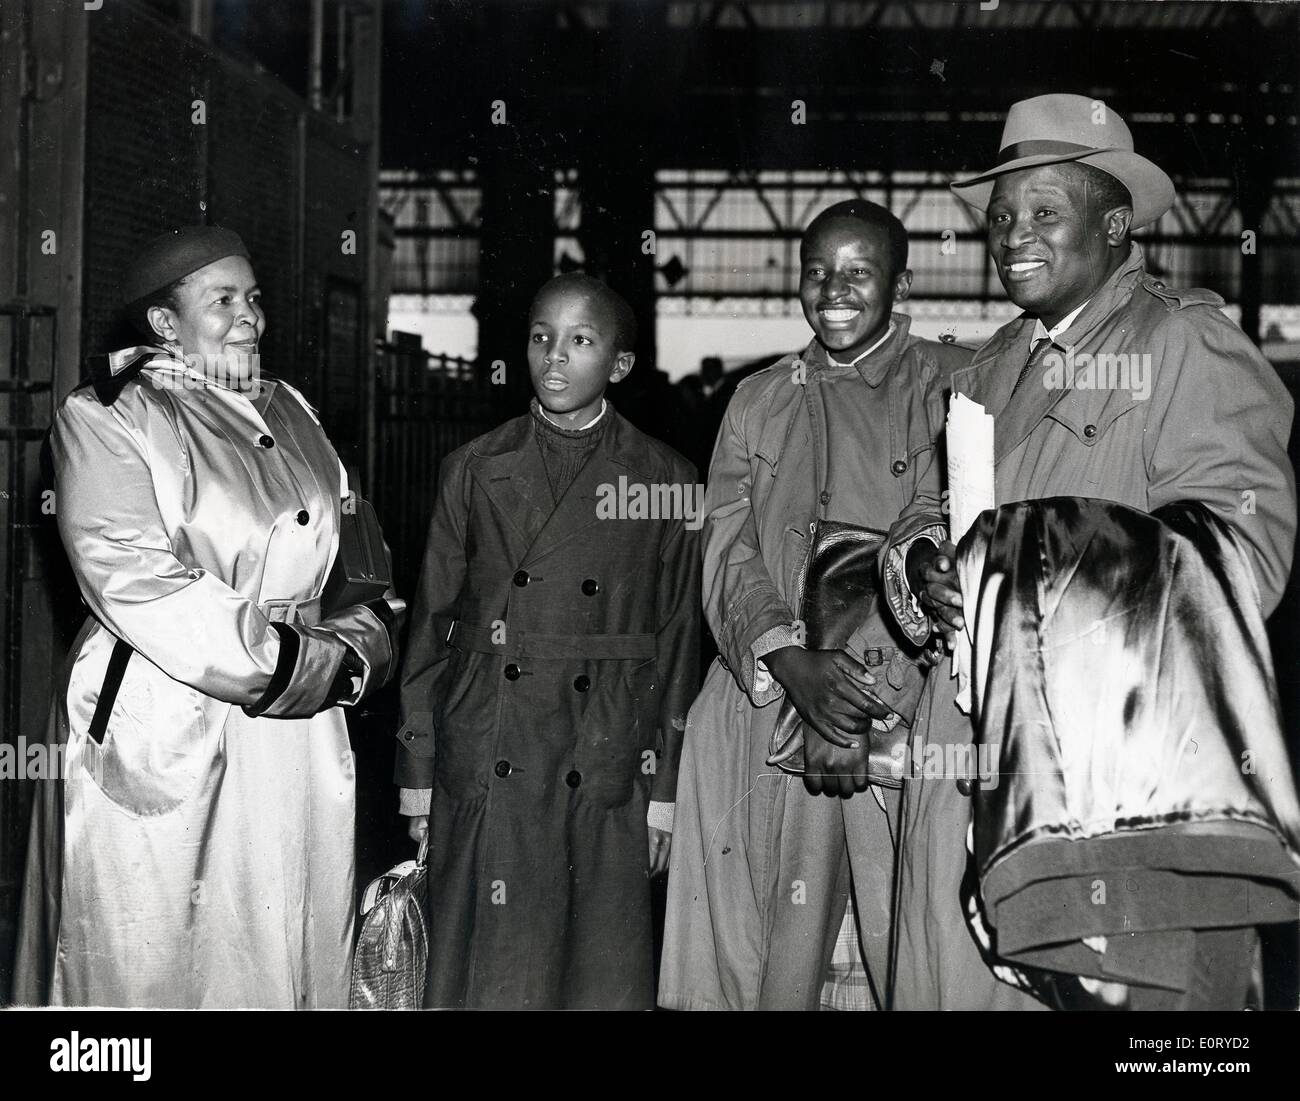 TSEKEDI KHAMA, regent of the Bamangwato, right. - Stock Image